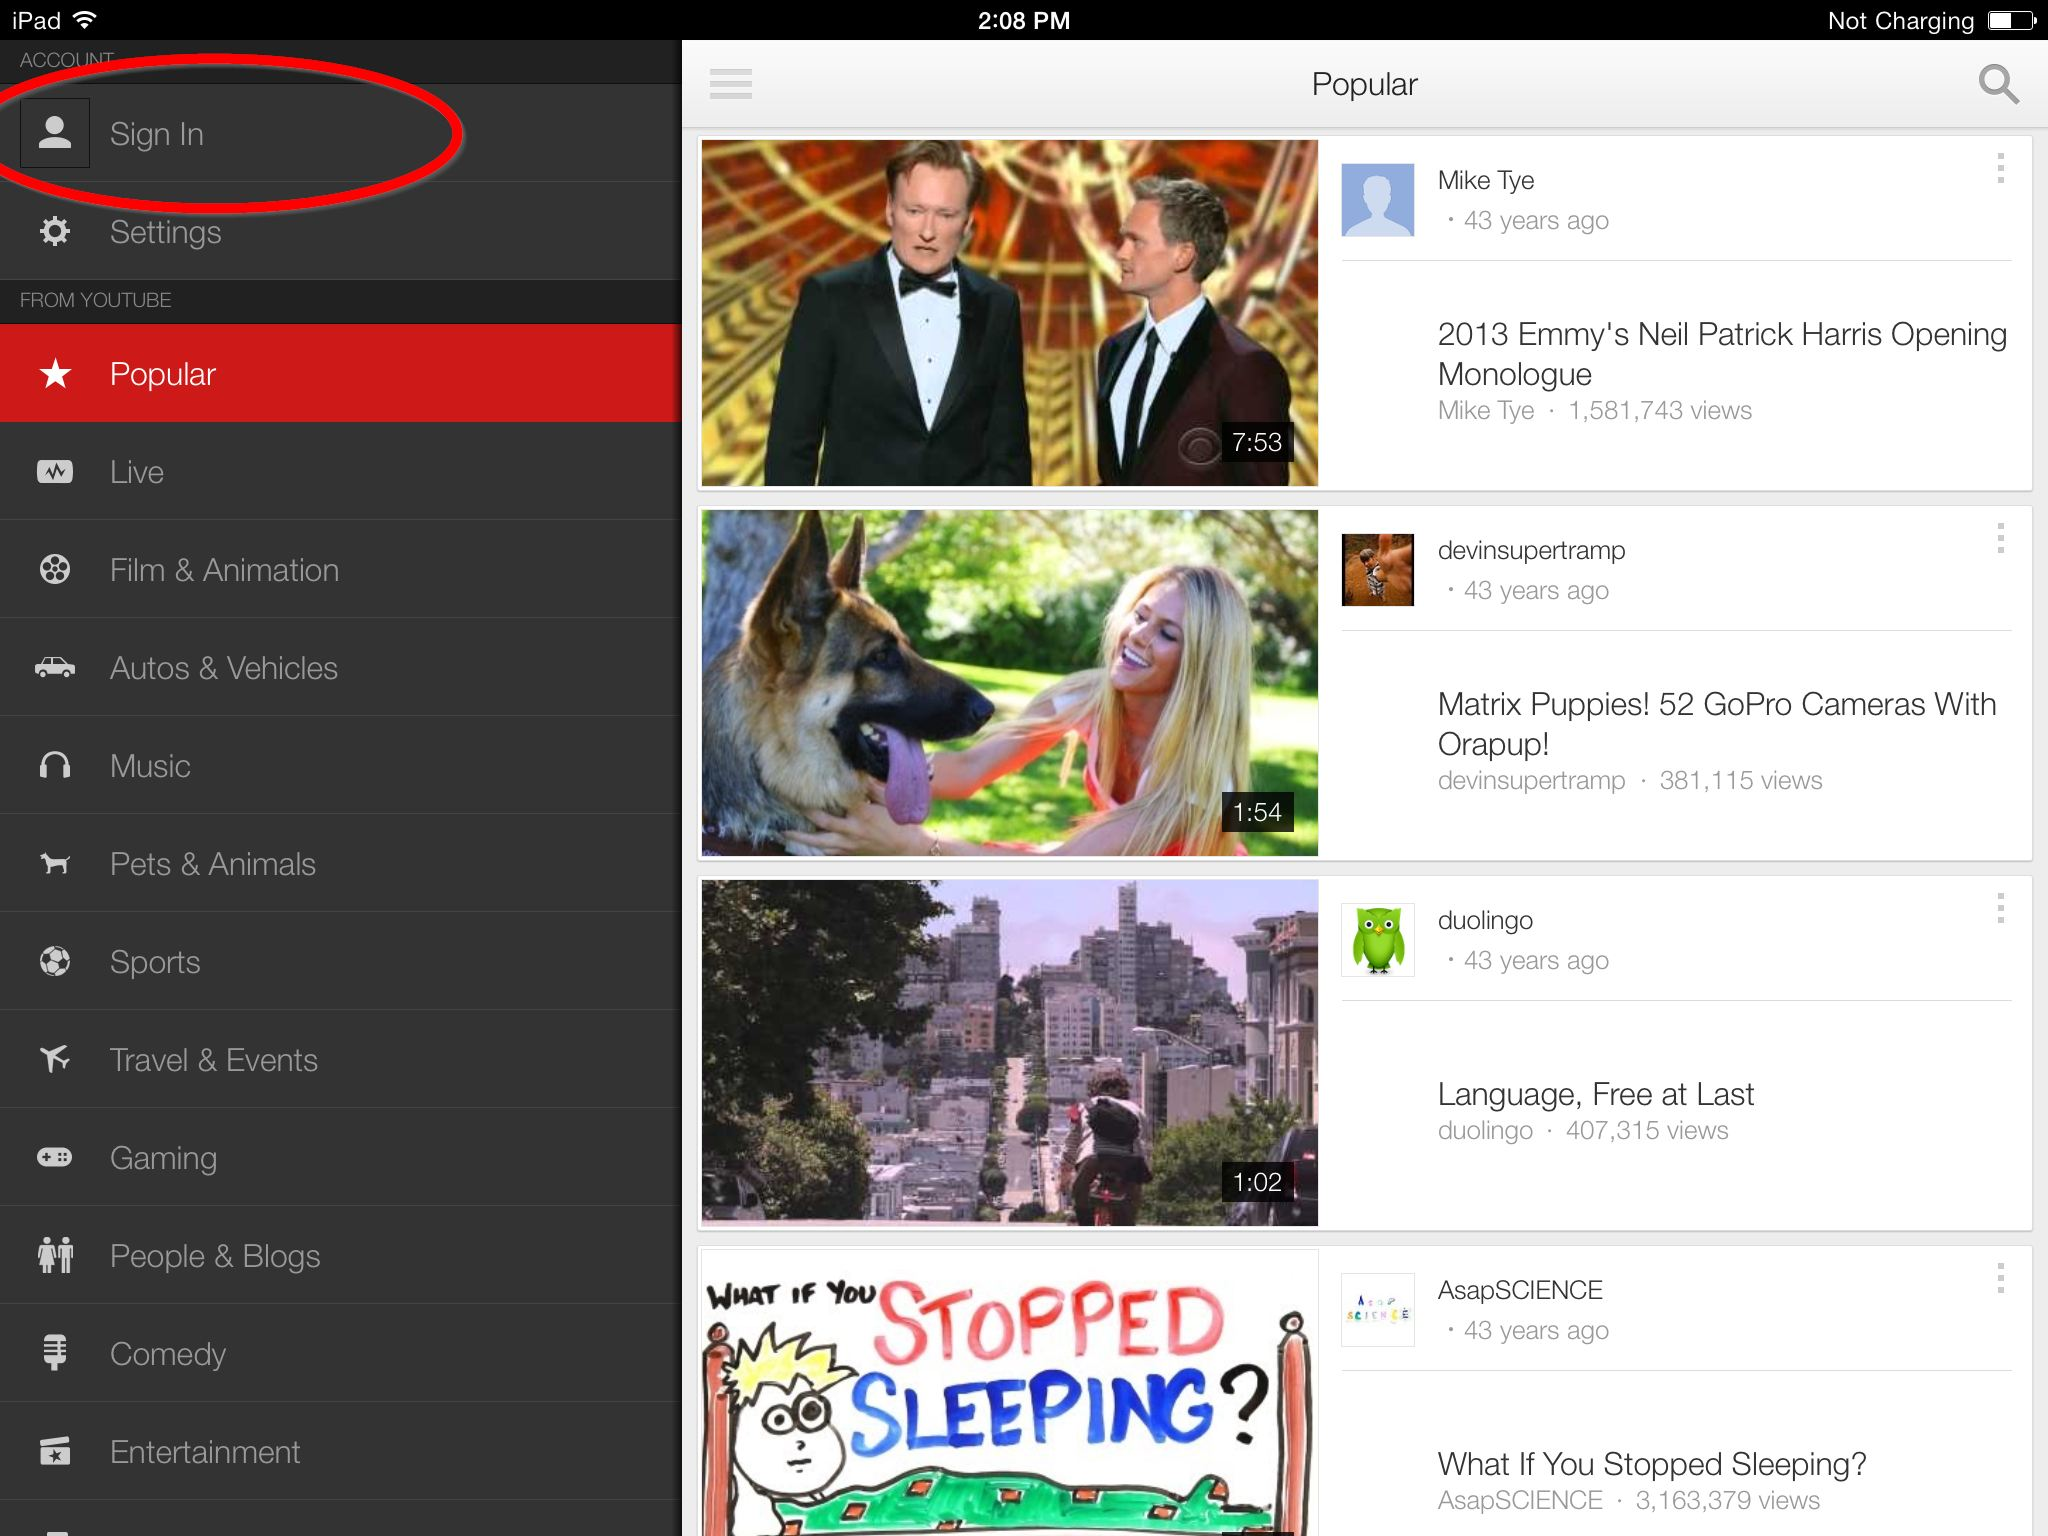 The YouTube interface, showing popular videos on the right and the menu bar on the left.